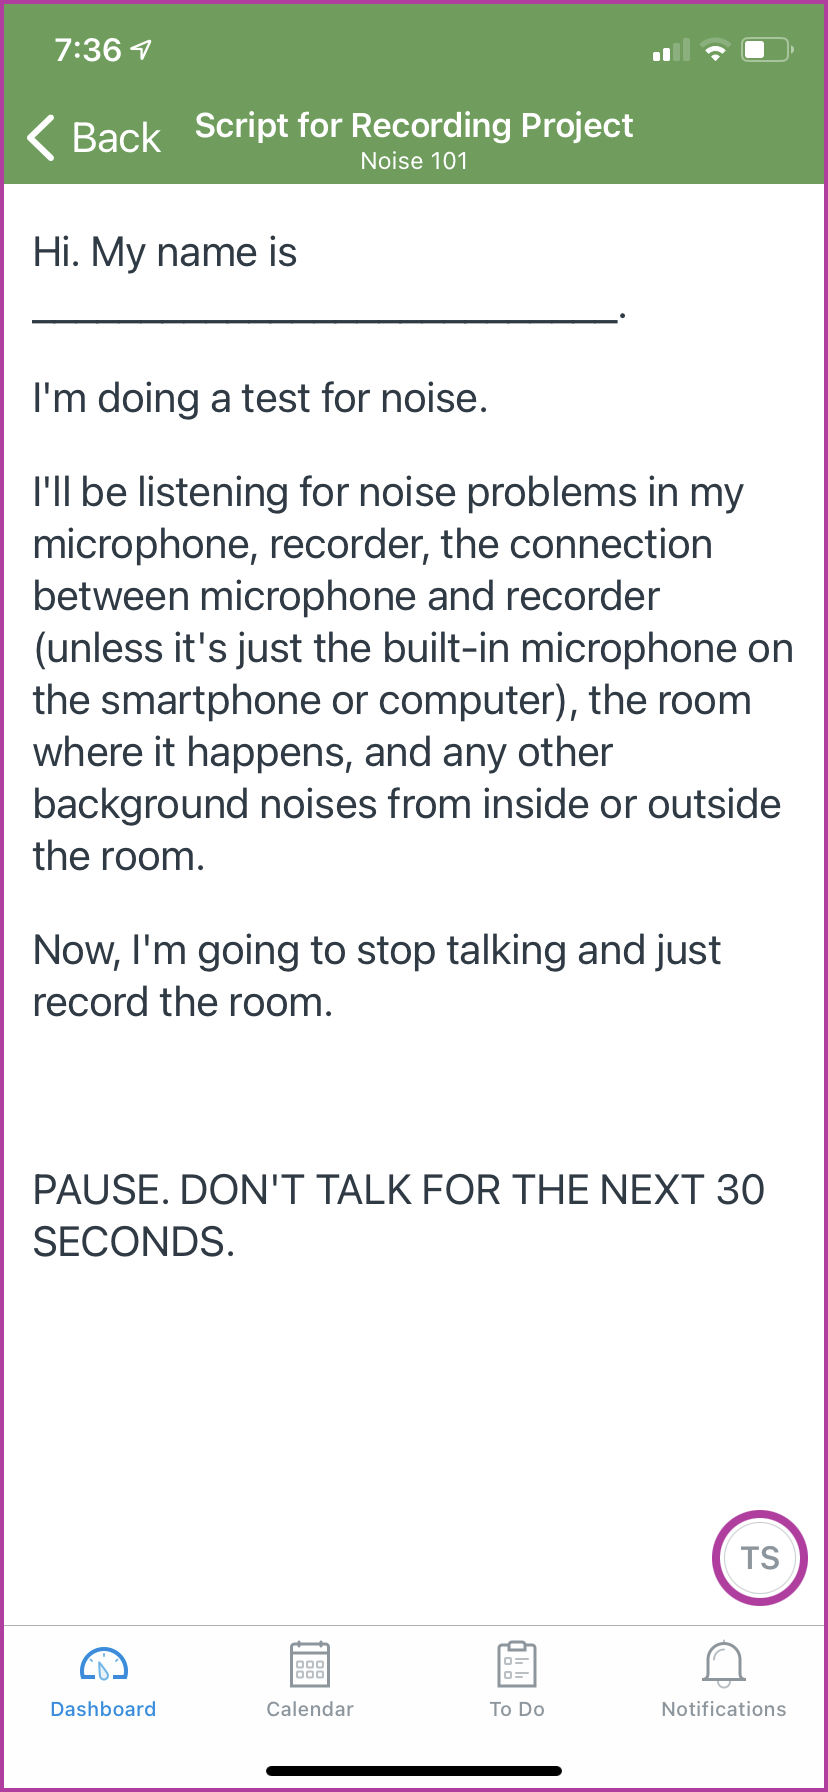 This is the script students will record for their projects in this Noise 101 course